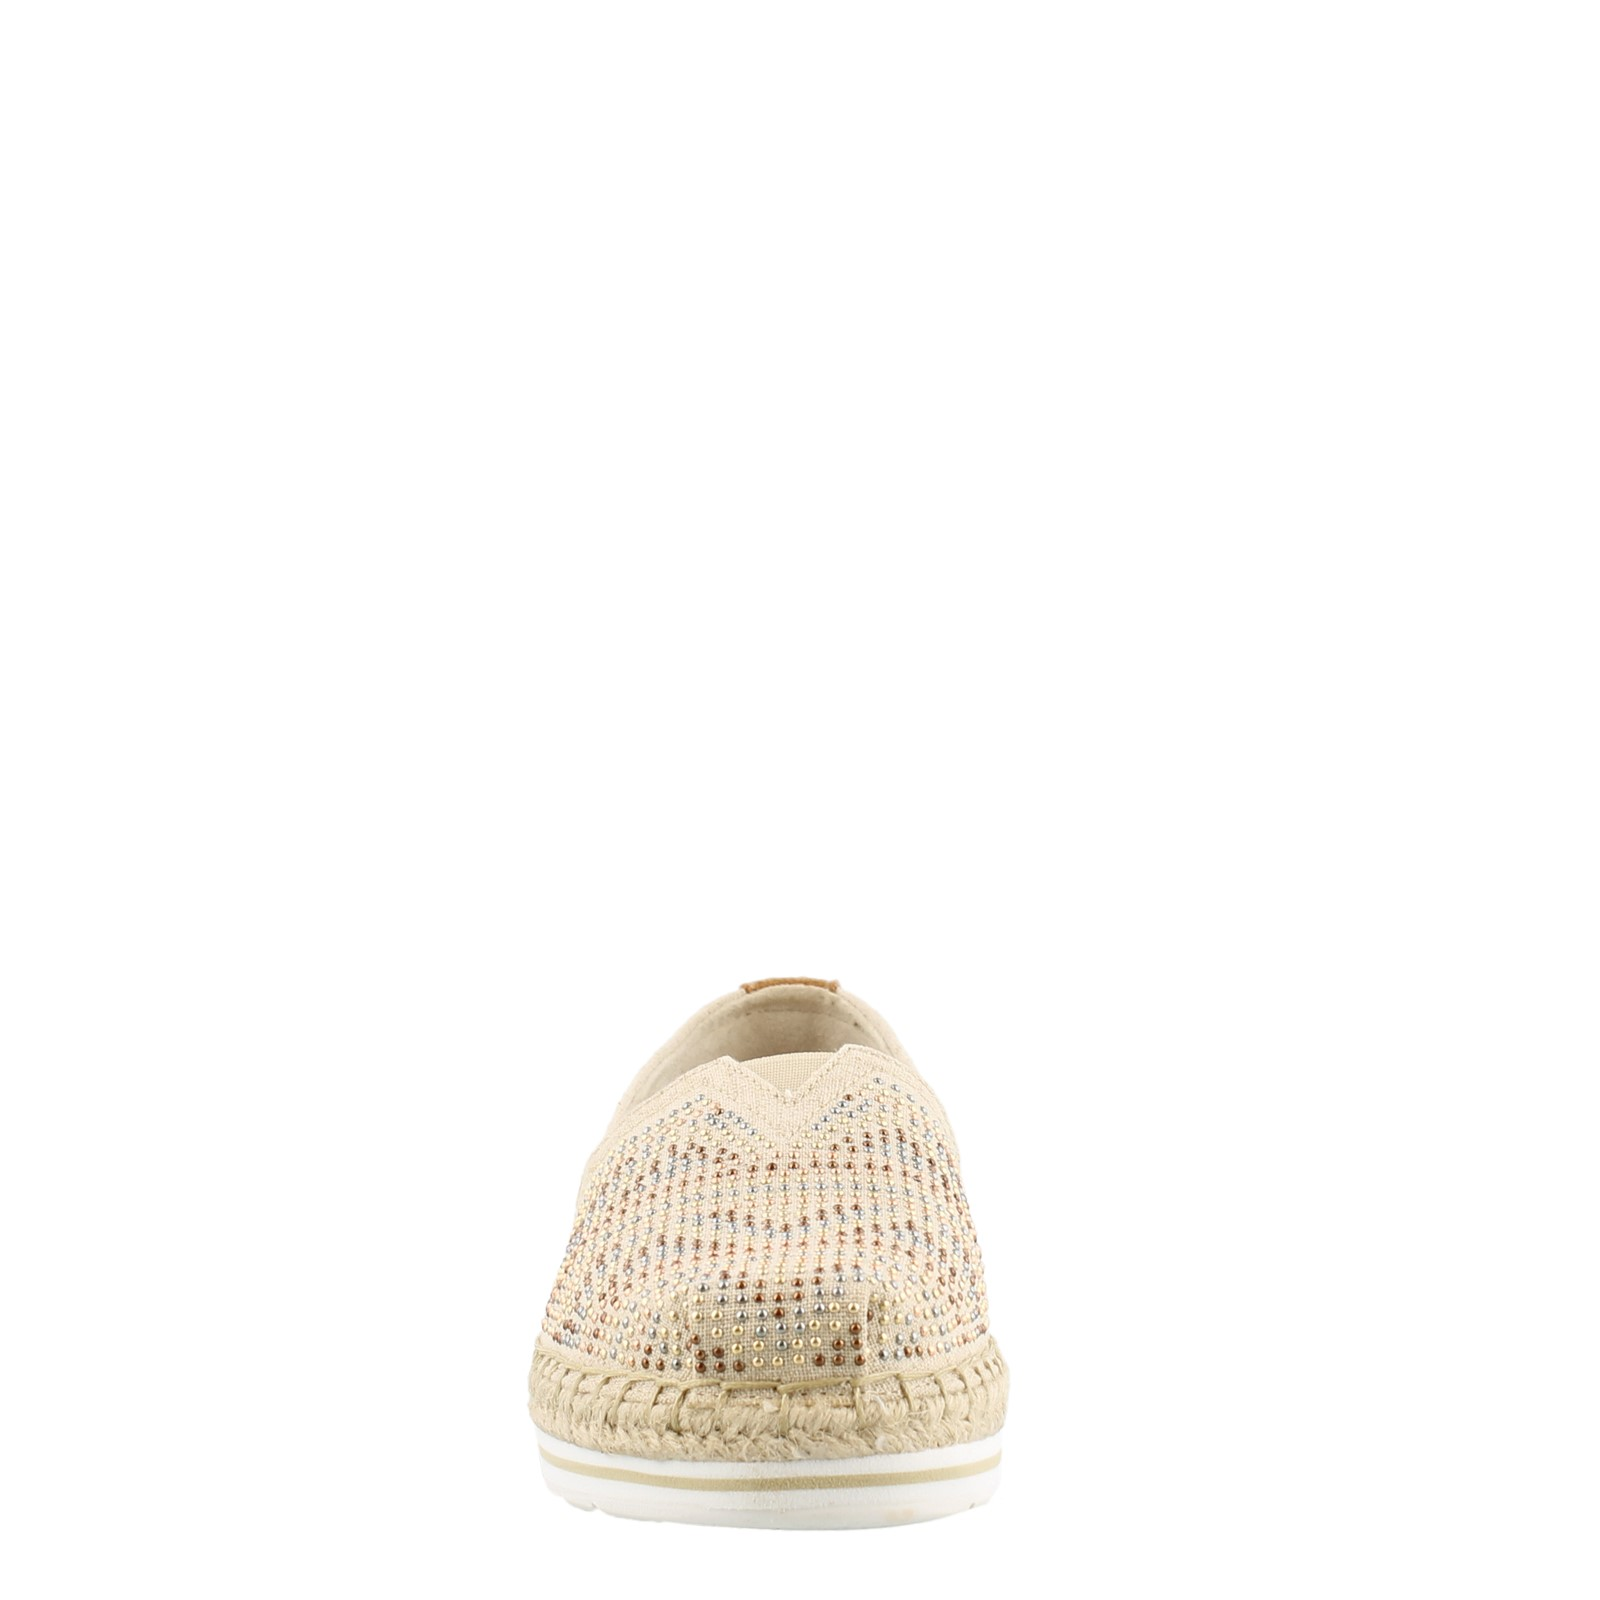 935678098cab4 Home; Women's Skechers, BOBS Breeze - Moonbeams and Stars. Previous